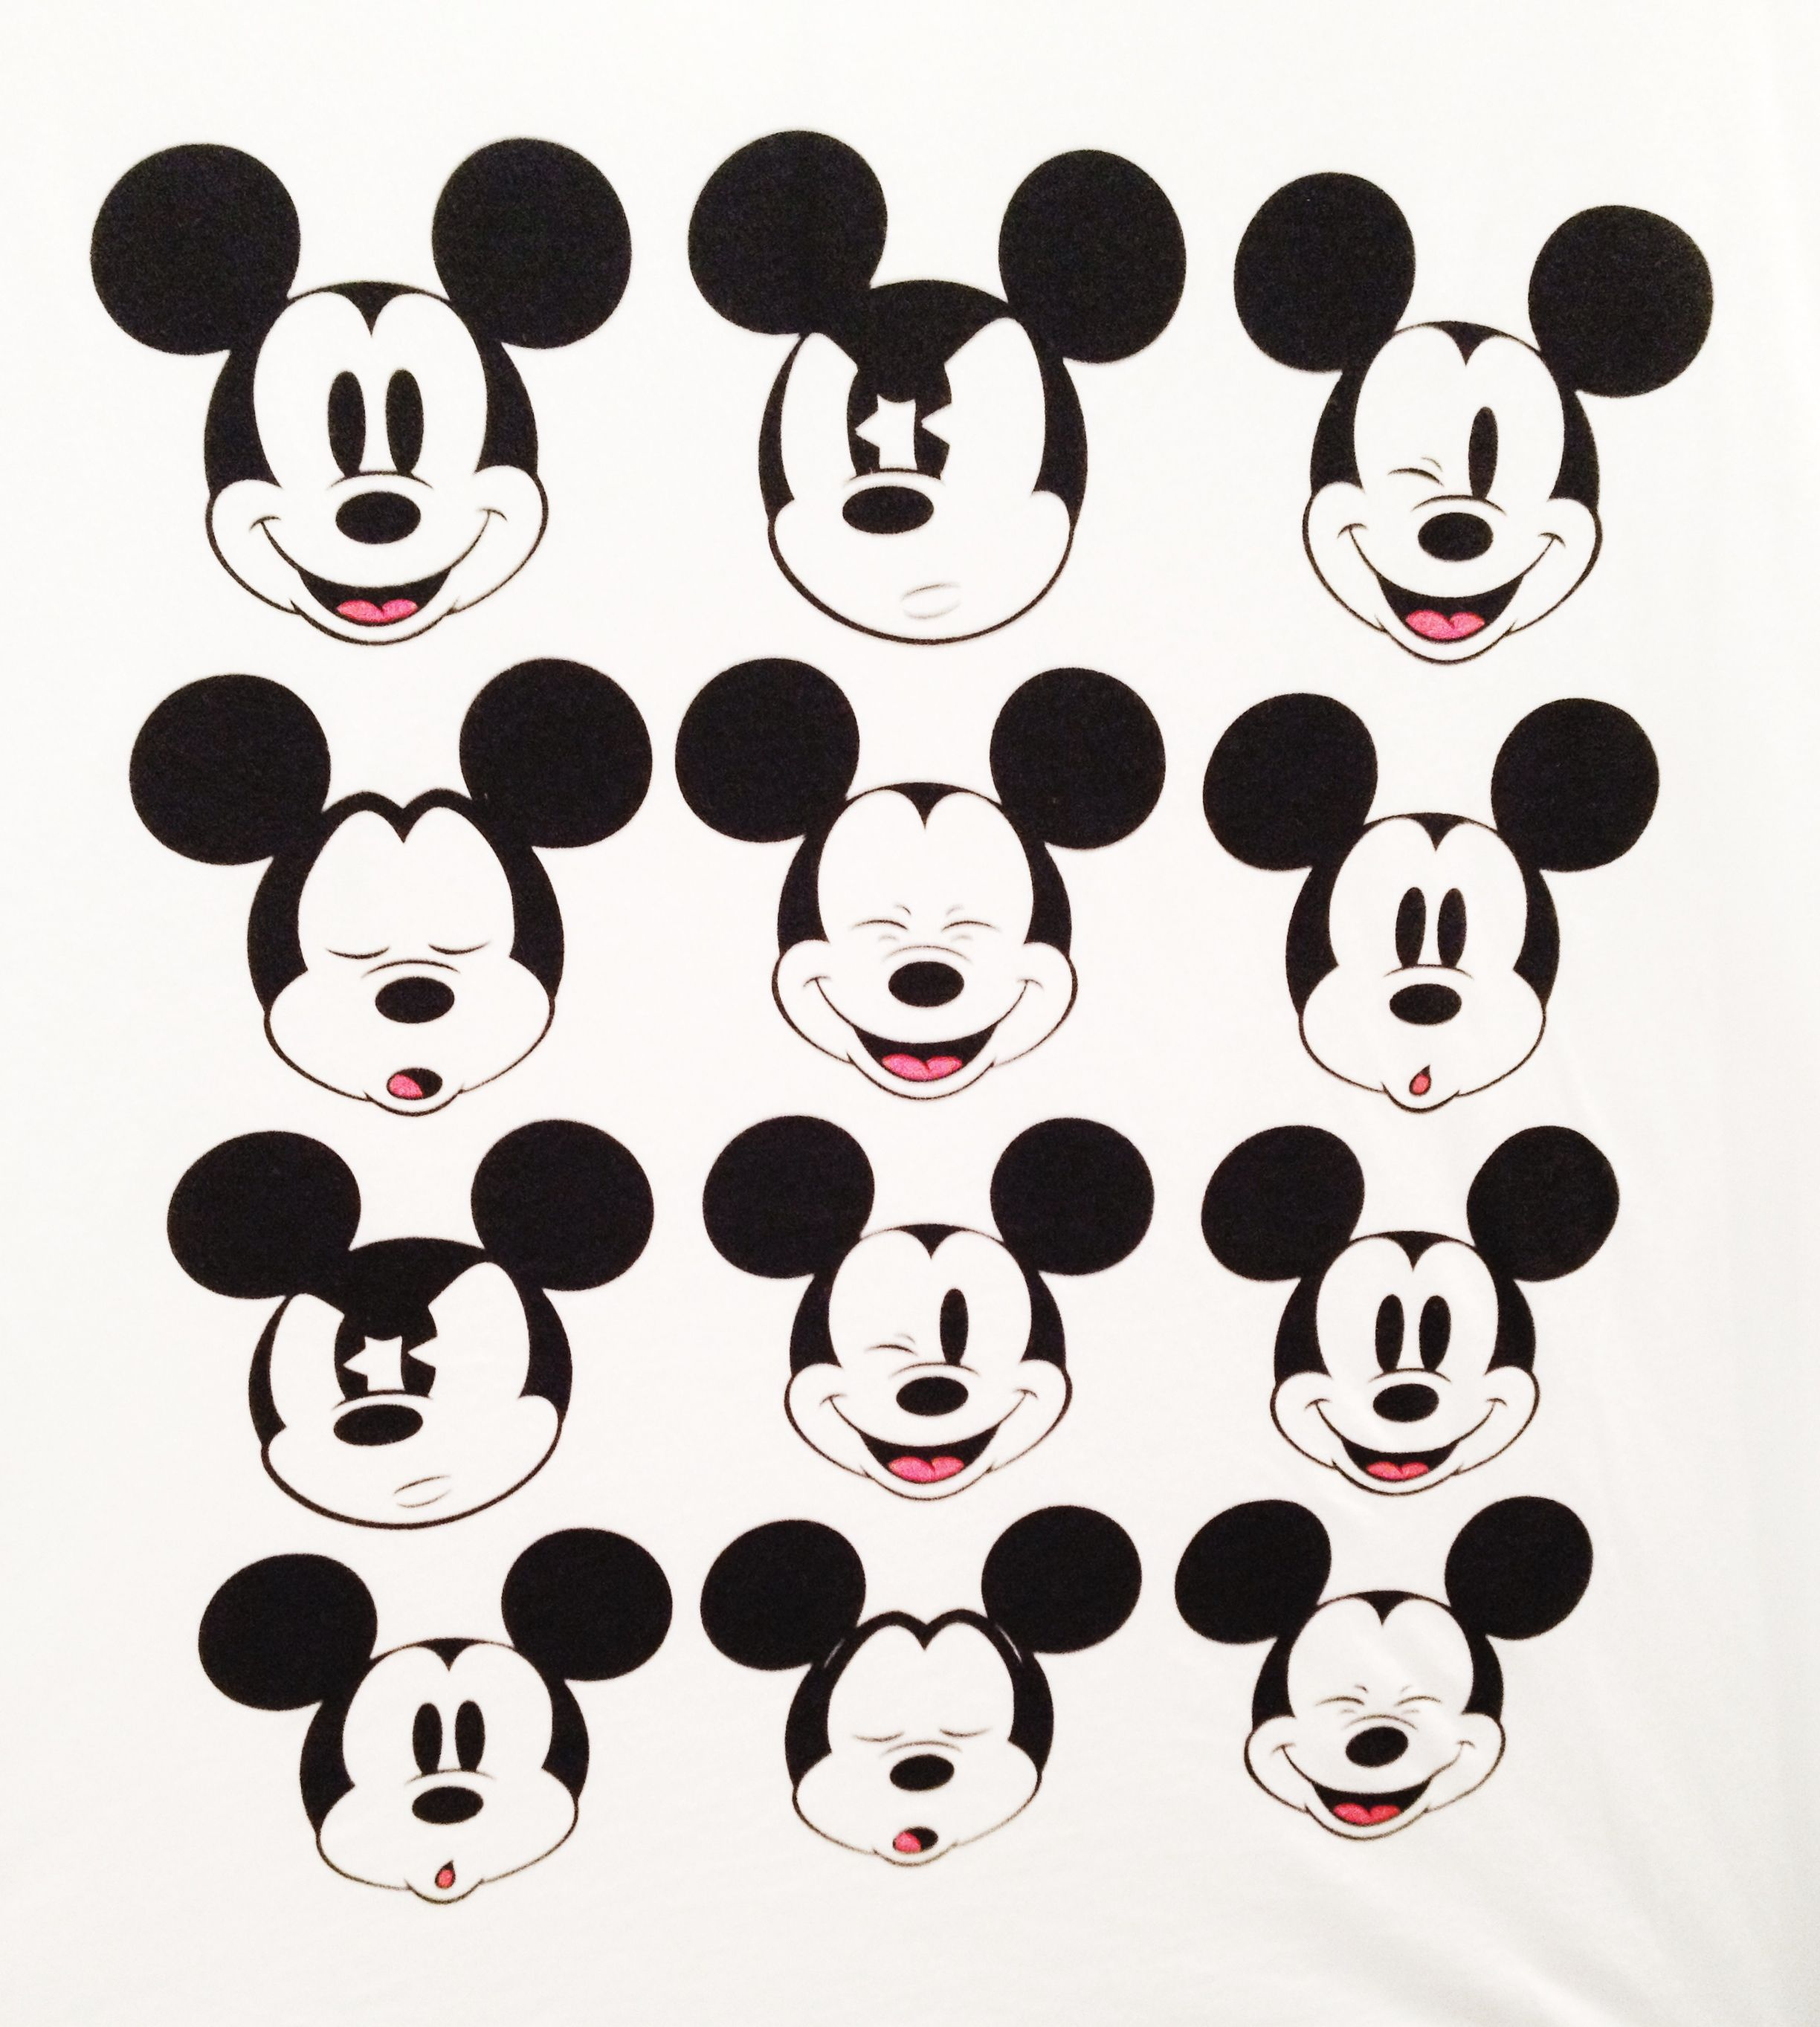 Mickey Mouse | Mickey Mouse and Co. | Pinterest | Türrahmen, Kinder ...